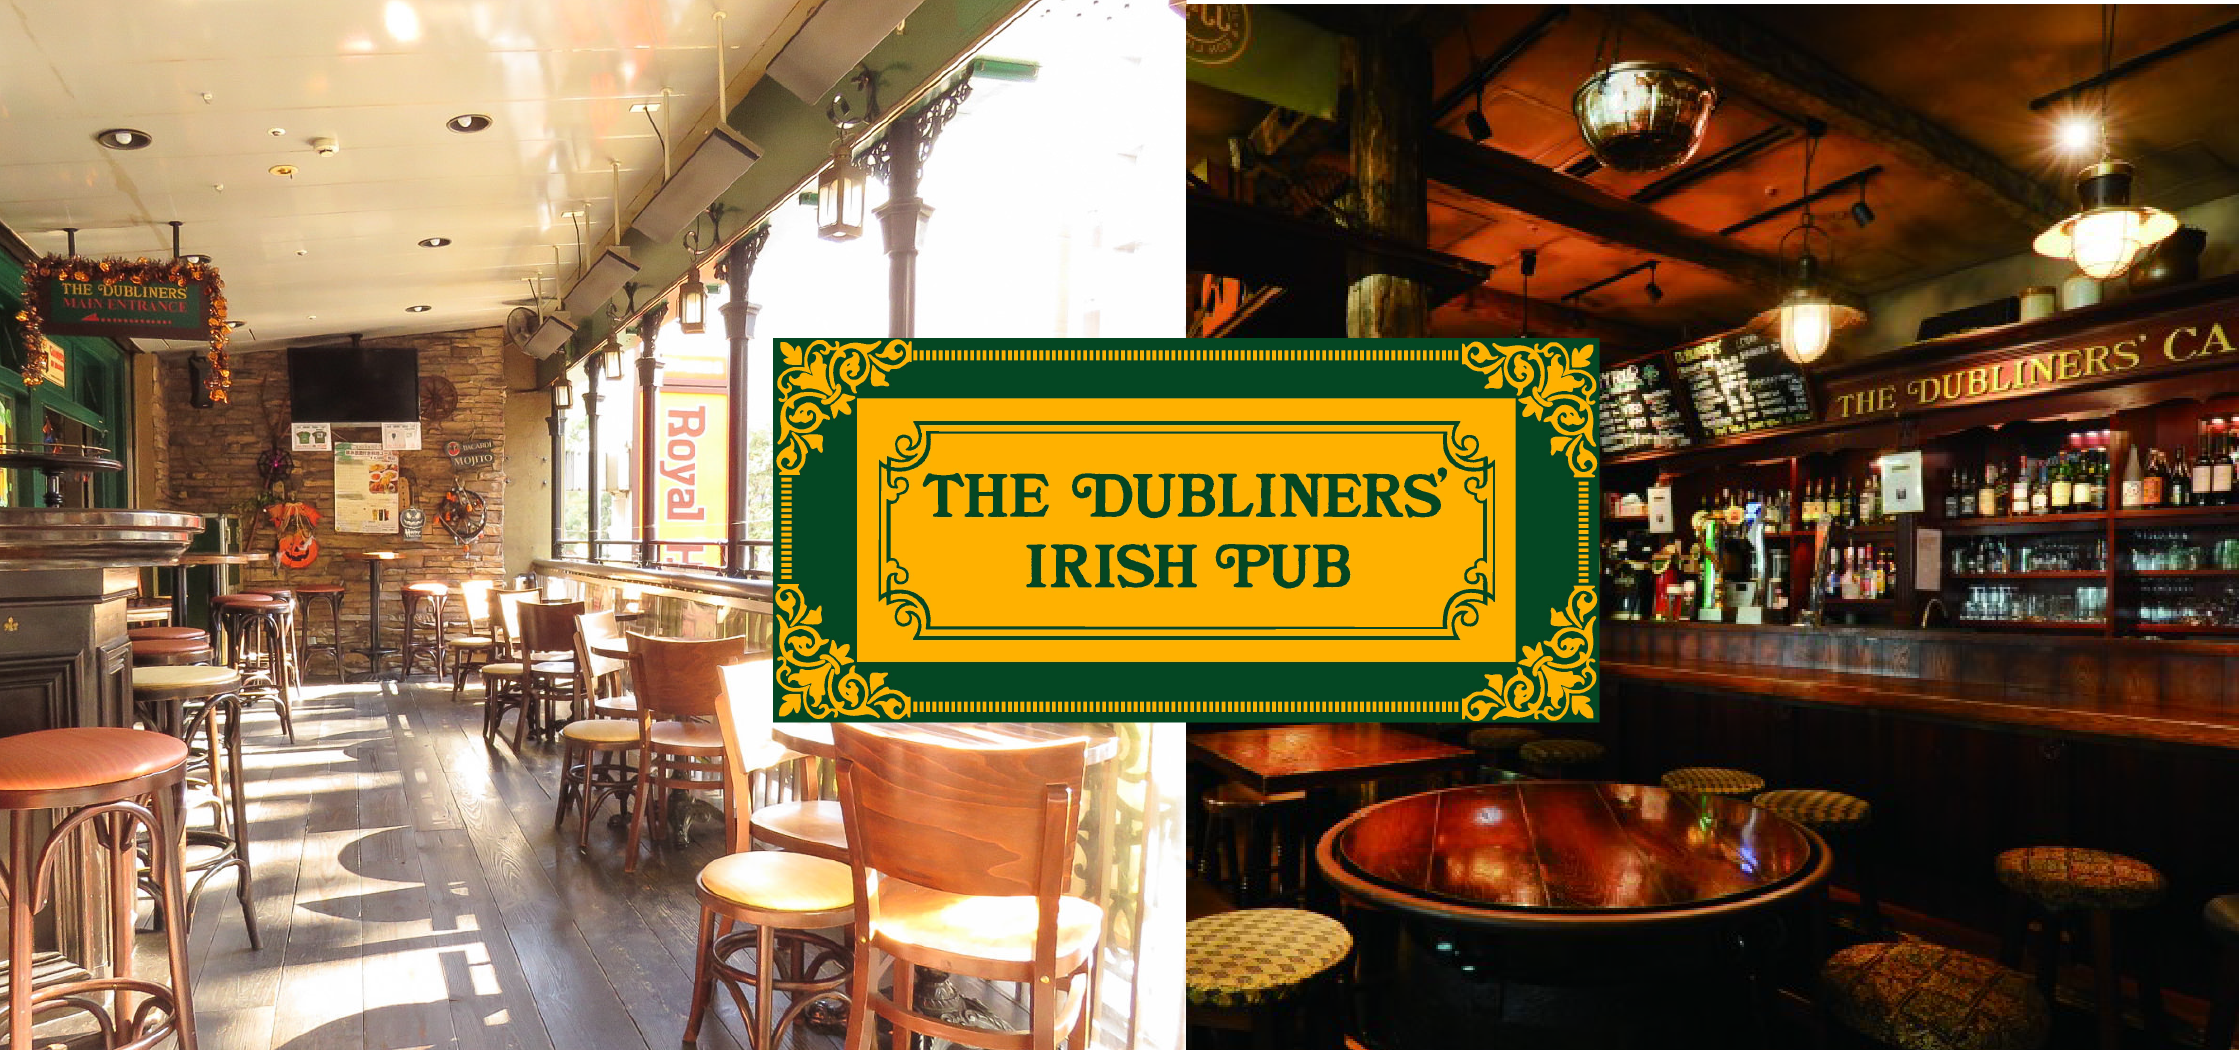 Dubliners Pub Sapporo Lion special offer